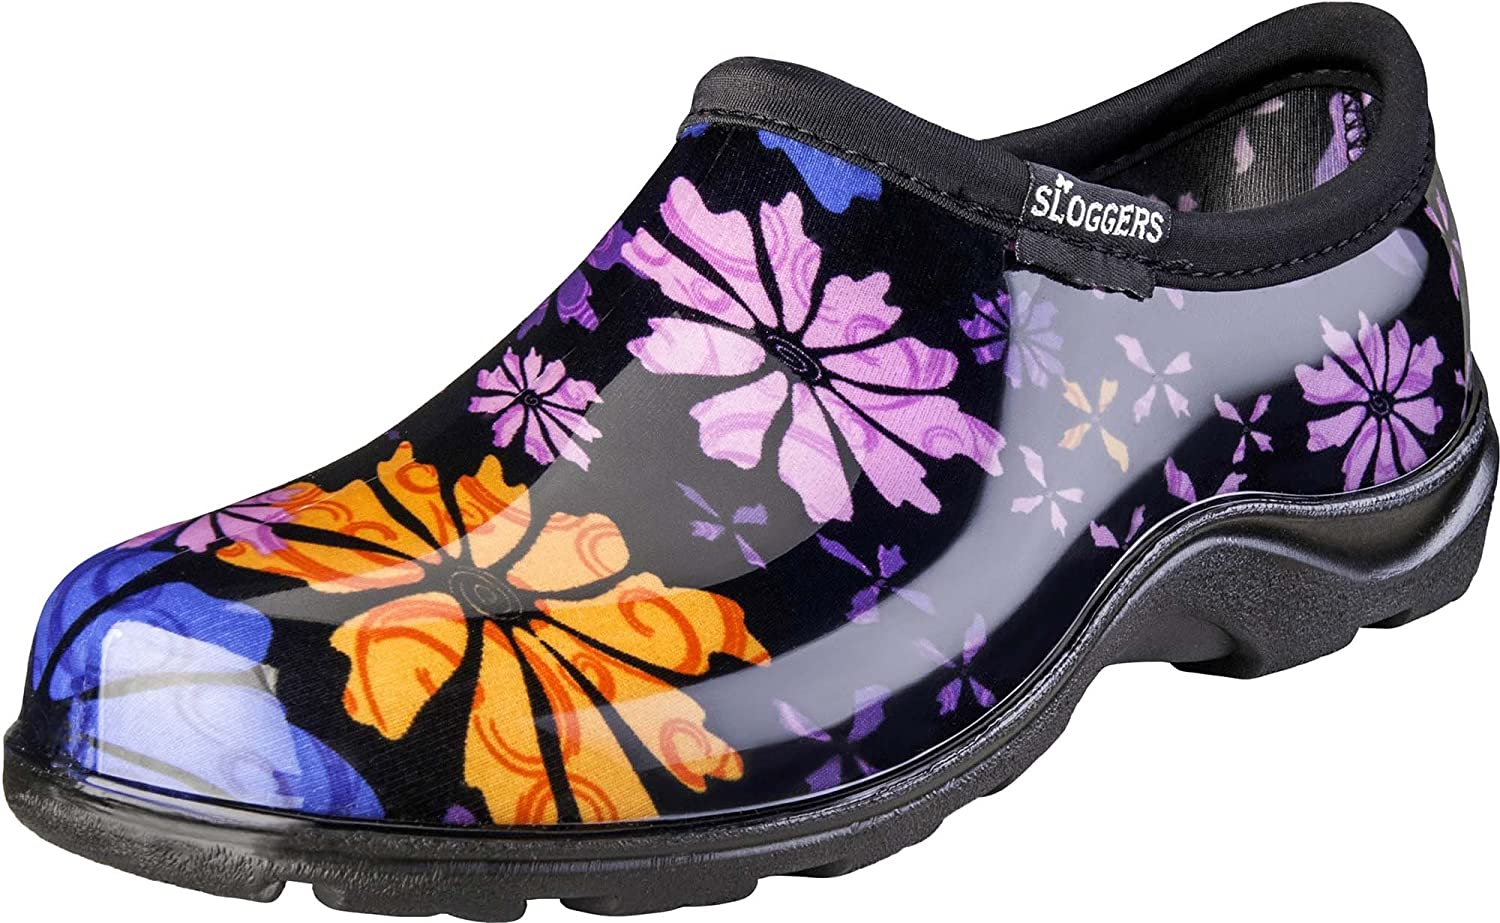 Amazoncom Sloggers 5116FP08 2016 Floral Collection Womens Rain